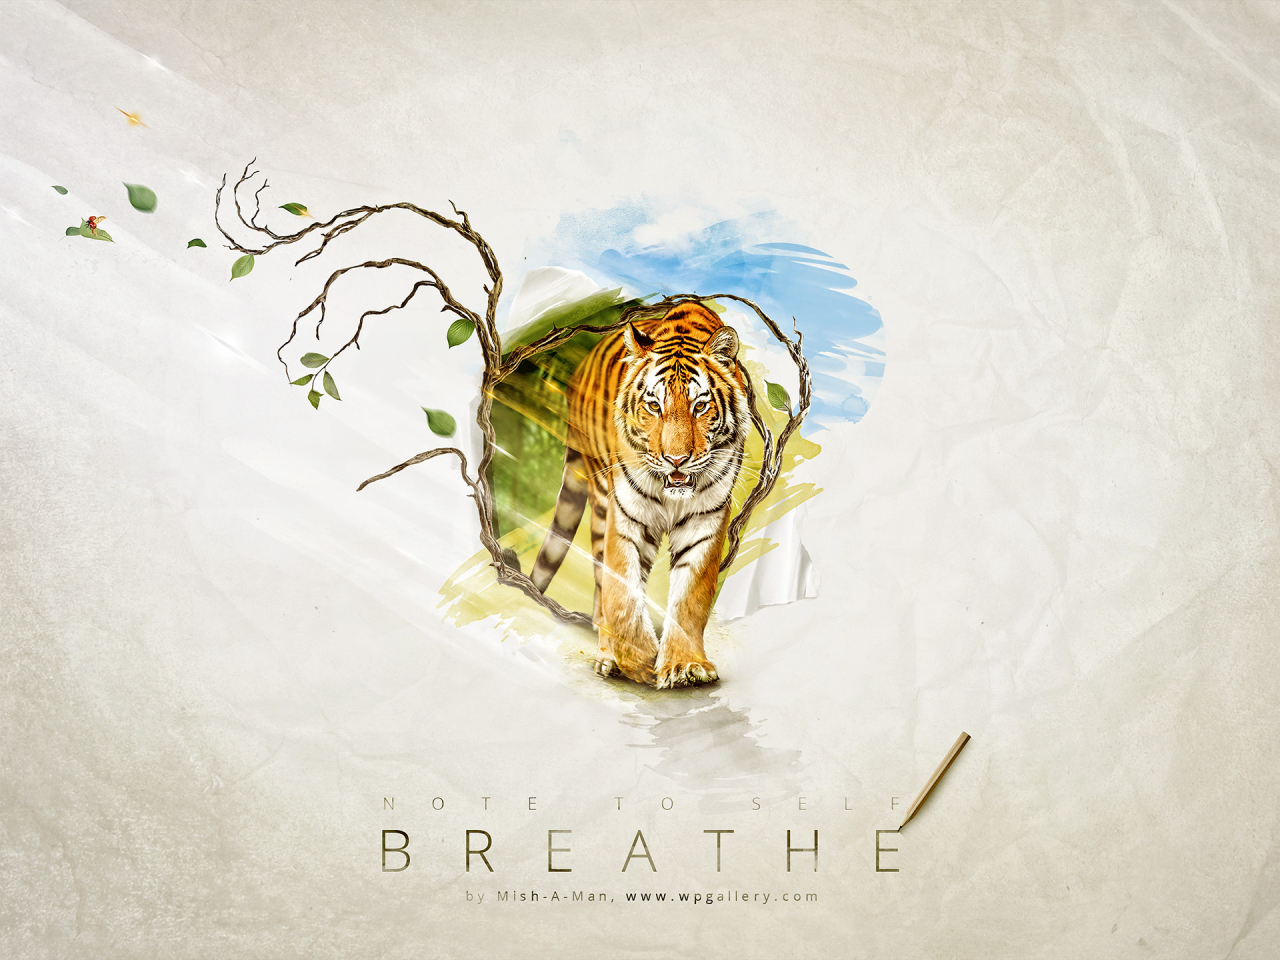 Breathe for 1280 x 960 resolution